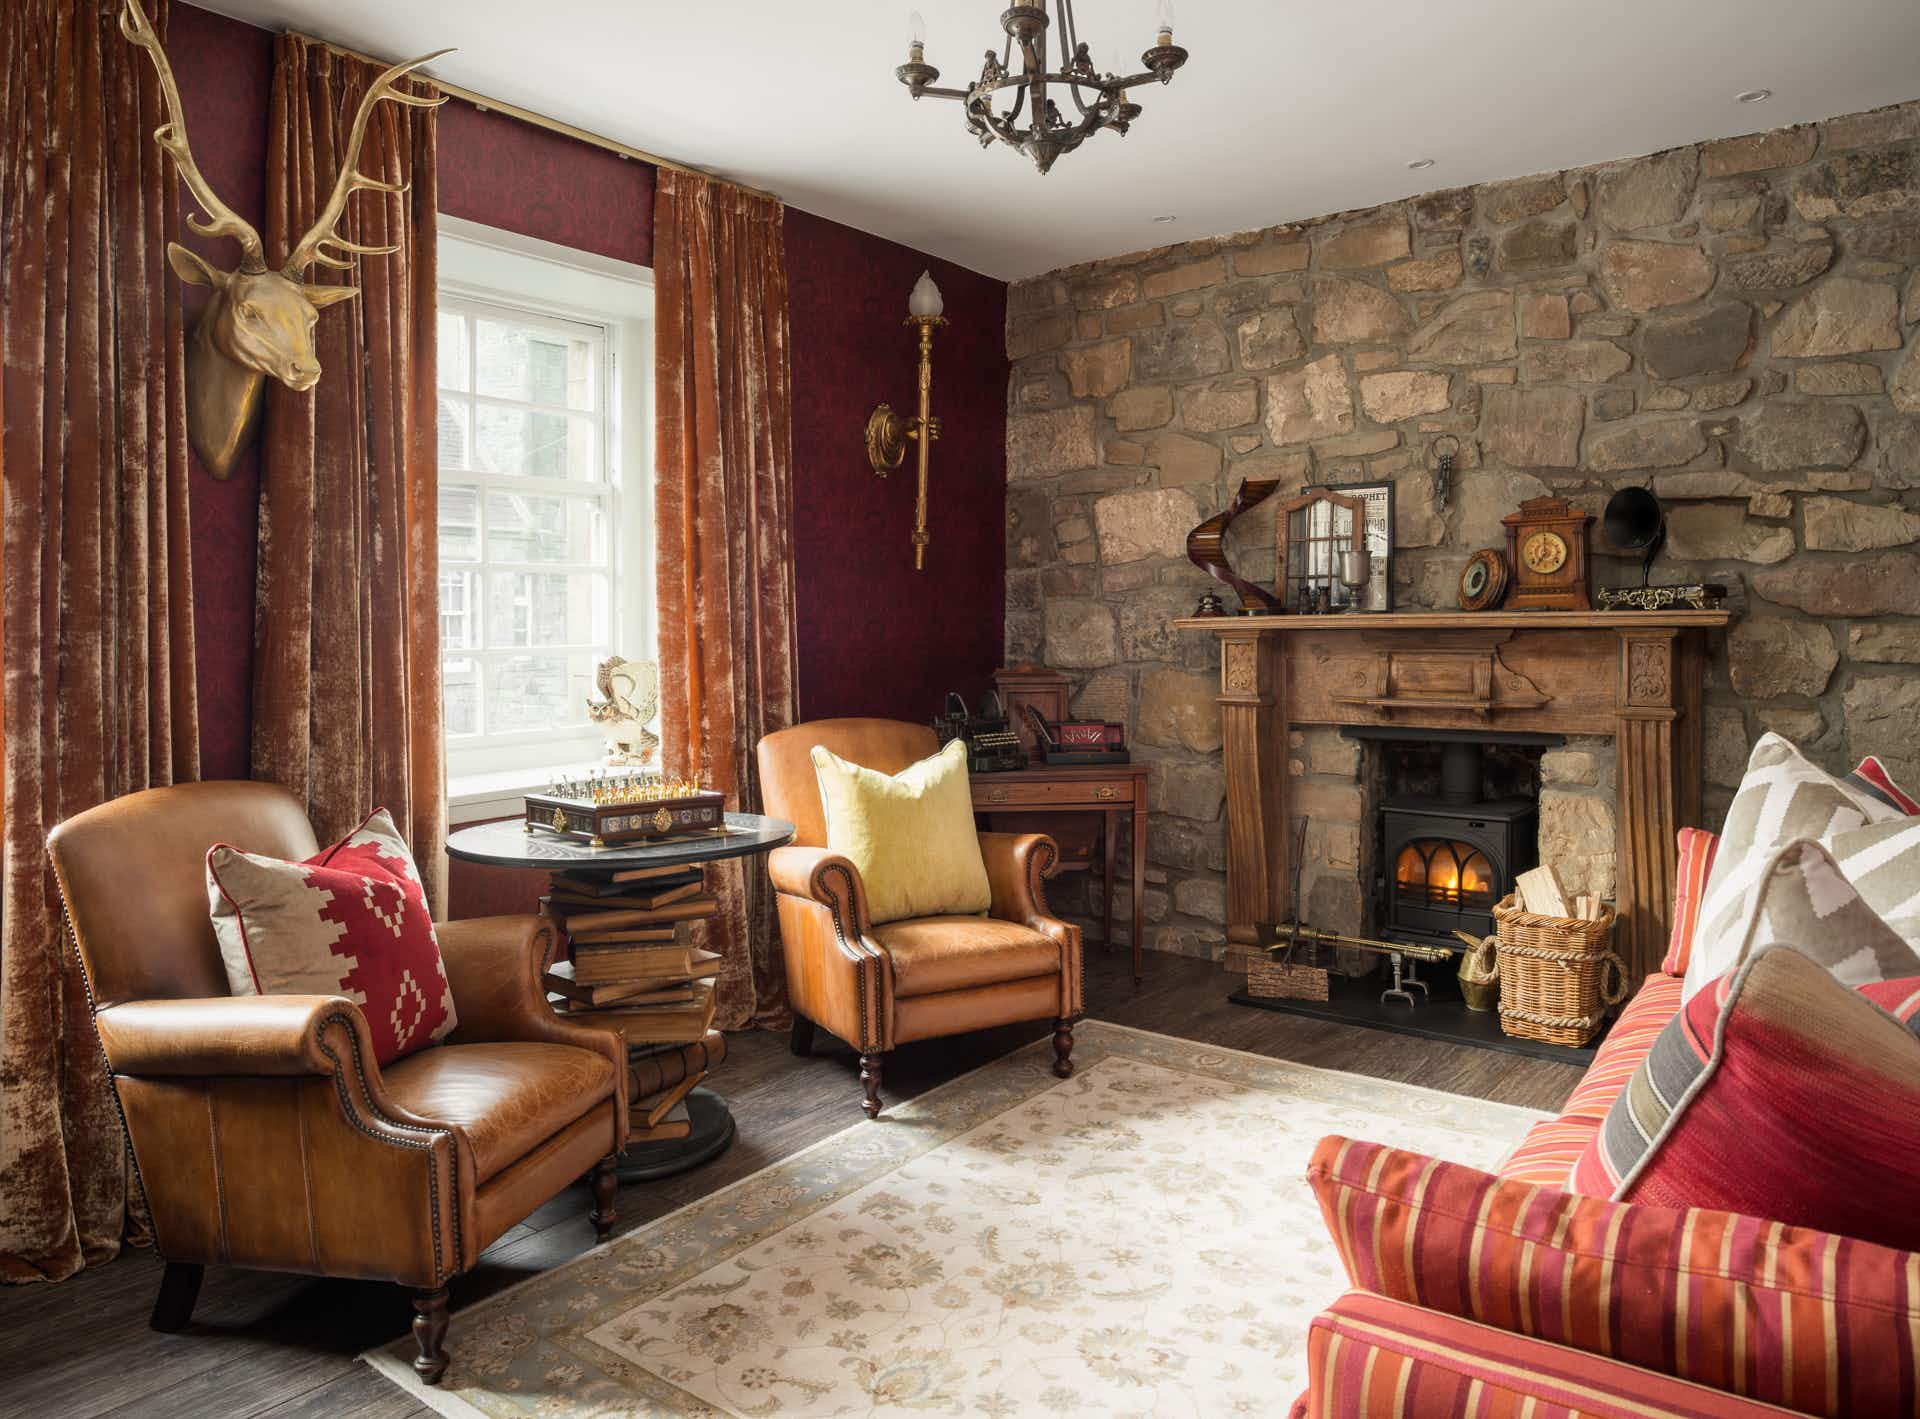 Stay in a Harry Potter-themed flat in the middle of Edinburgh's Old Town